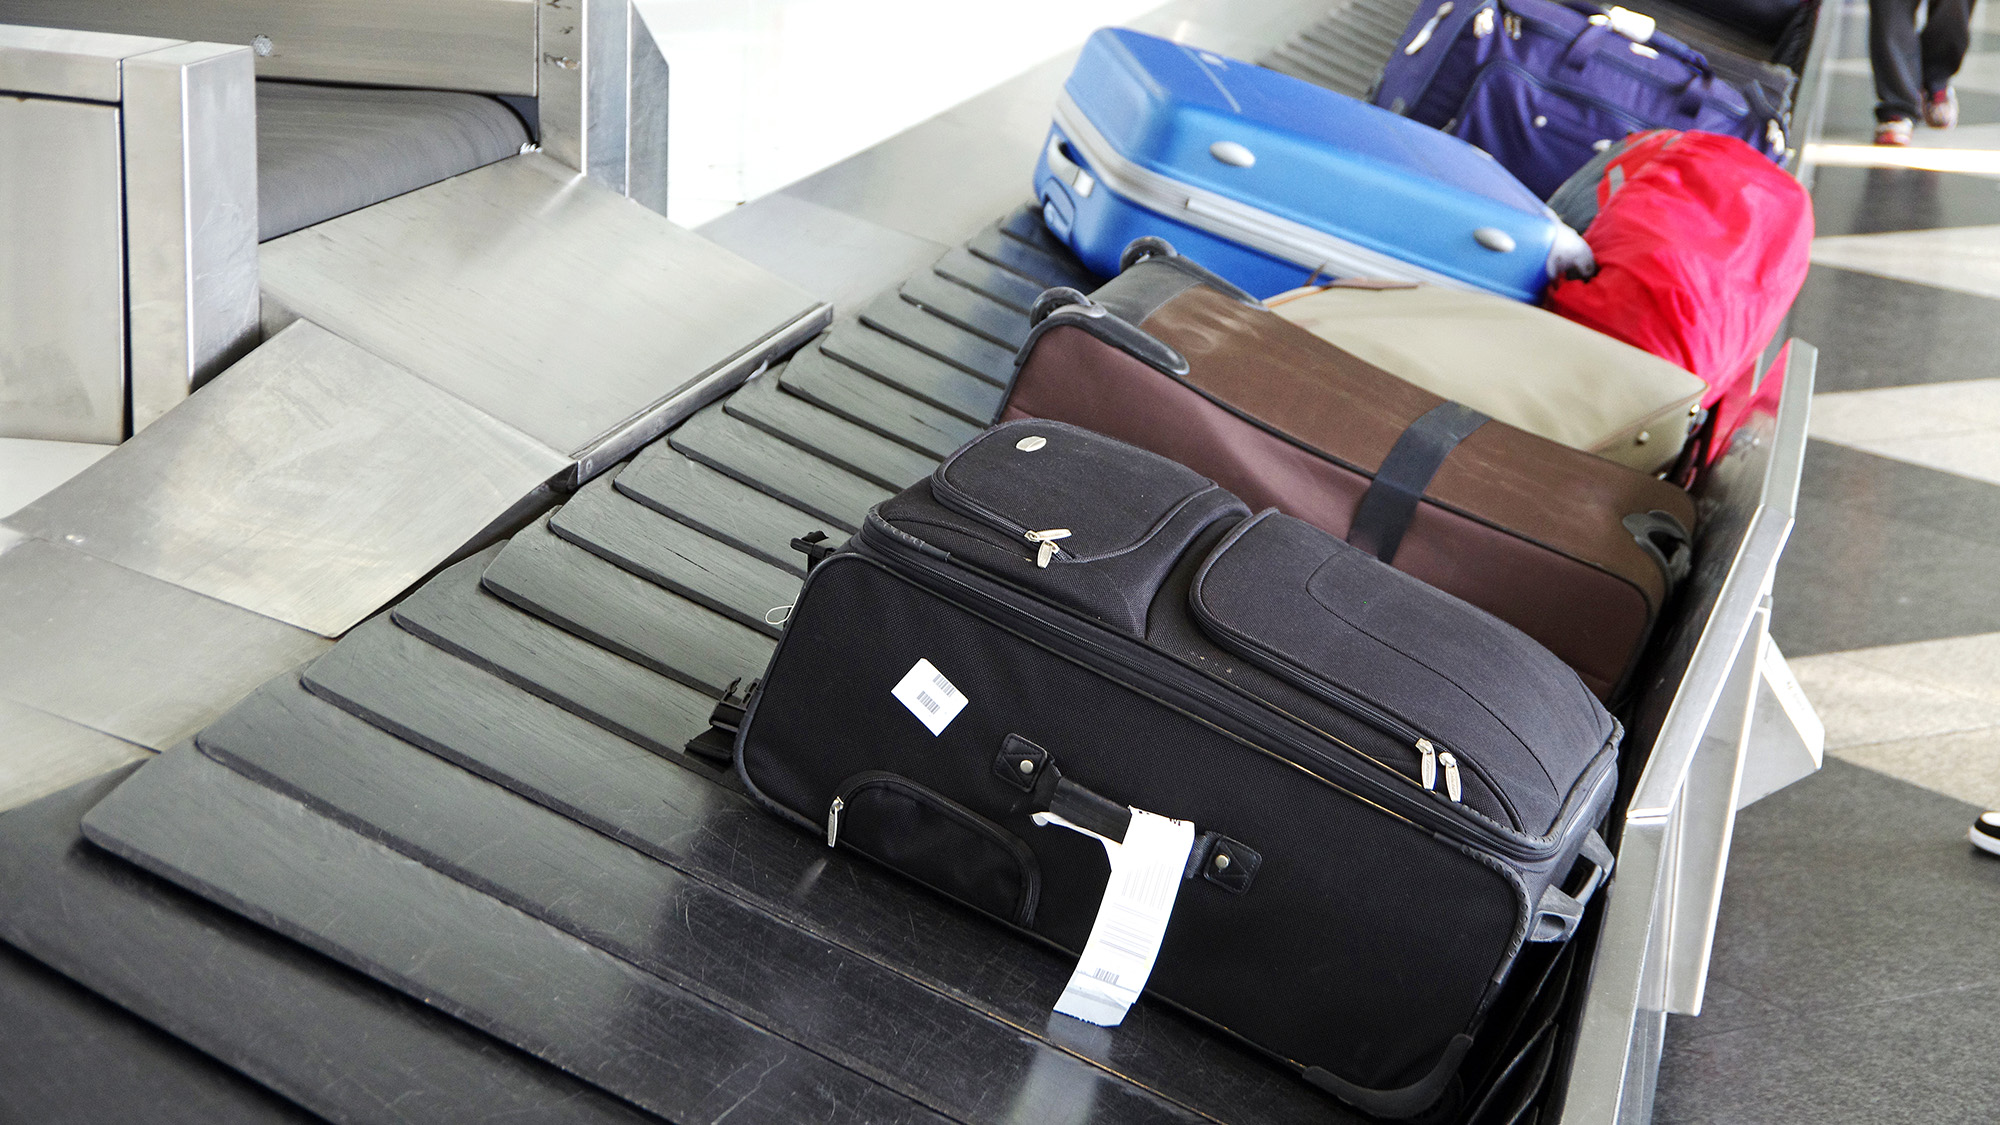 One man's genius way to avoid losing your luggage